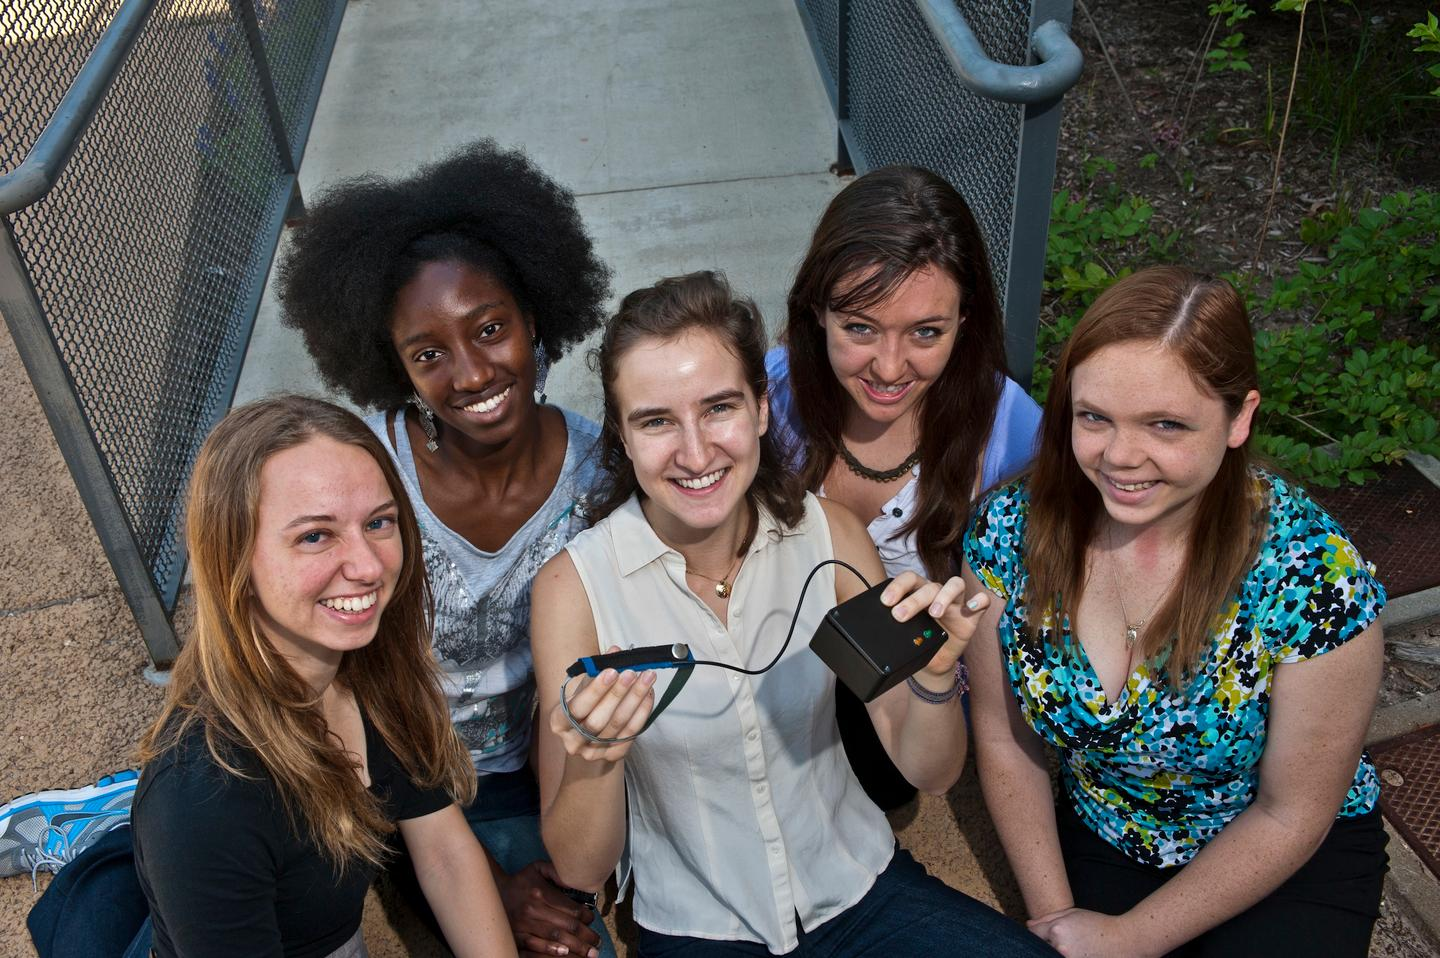 Team Breath Alert with the Babalung (from left: From left: Andrea Ulrich, Bridget Ugoh, Rachel Gilbert, Jordan Schermerhorn and Rachel Alexander)